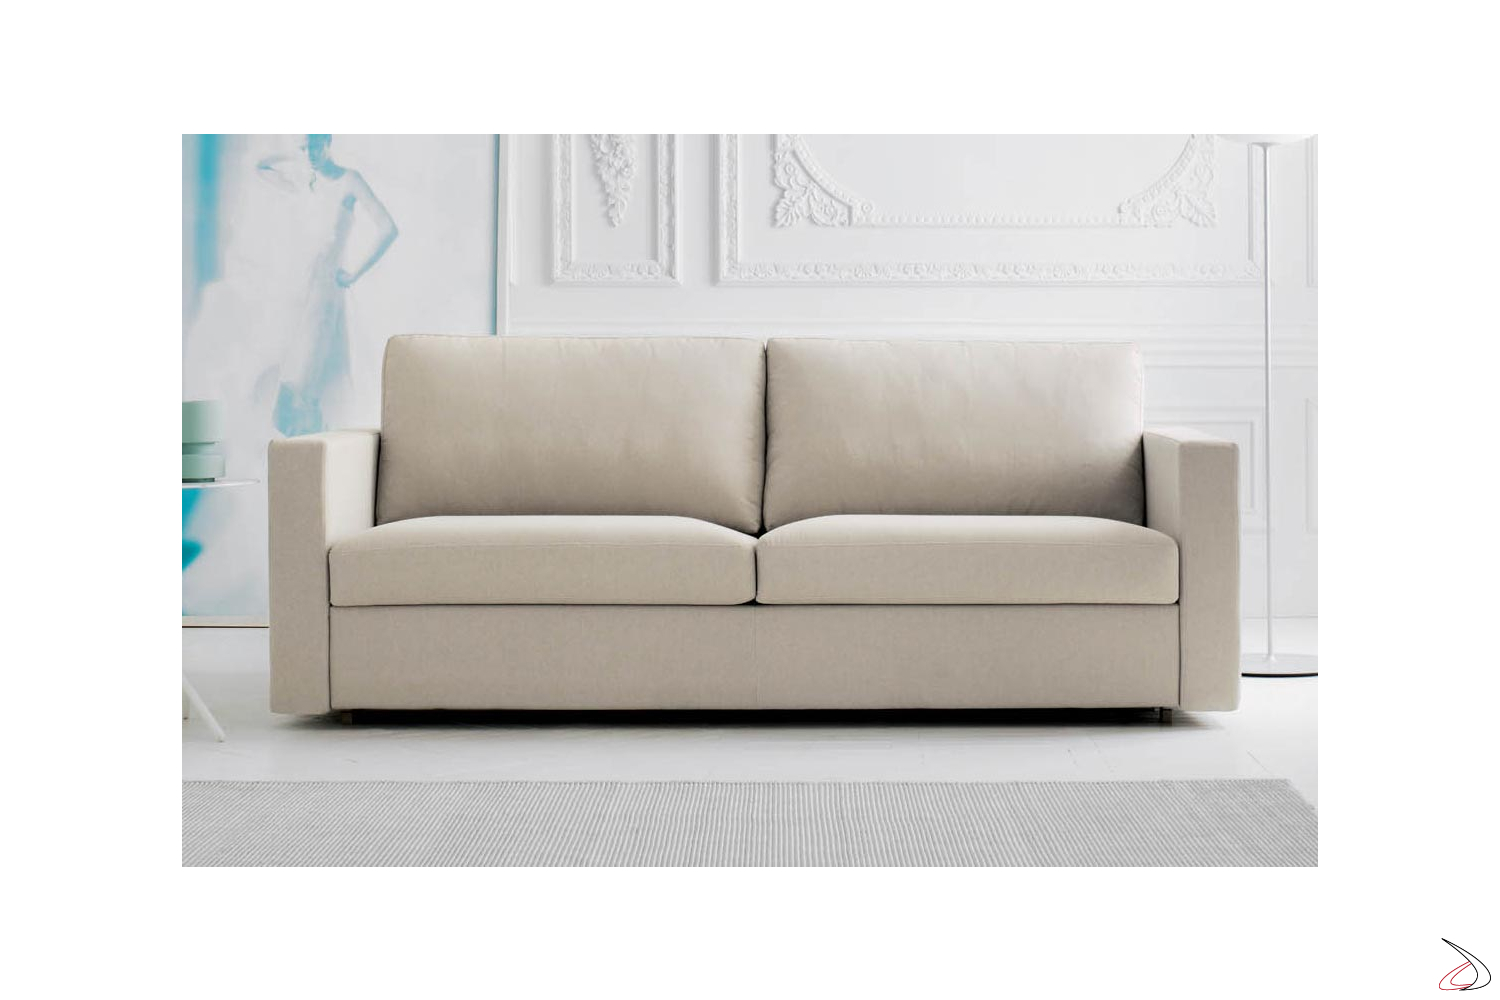 Sorty sofa bed